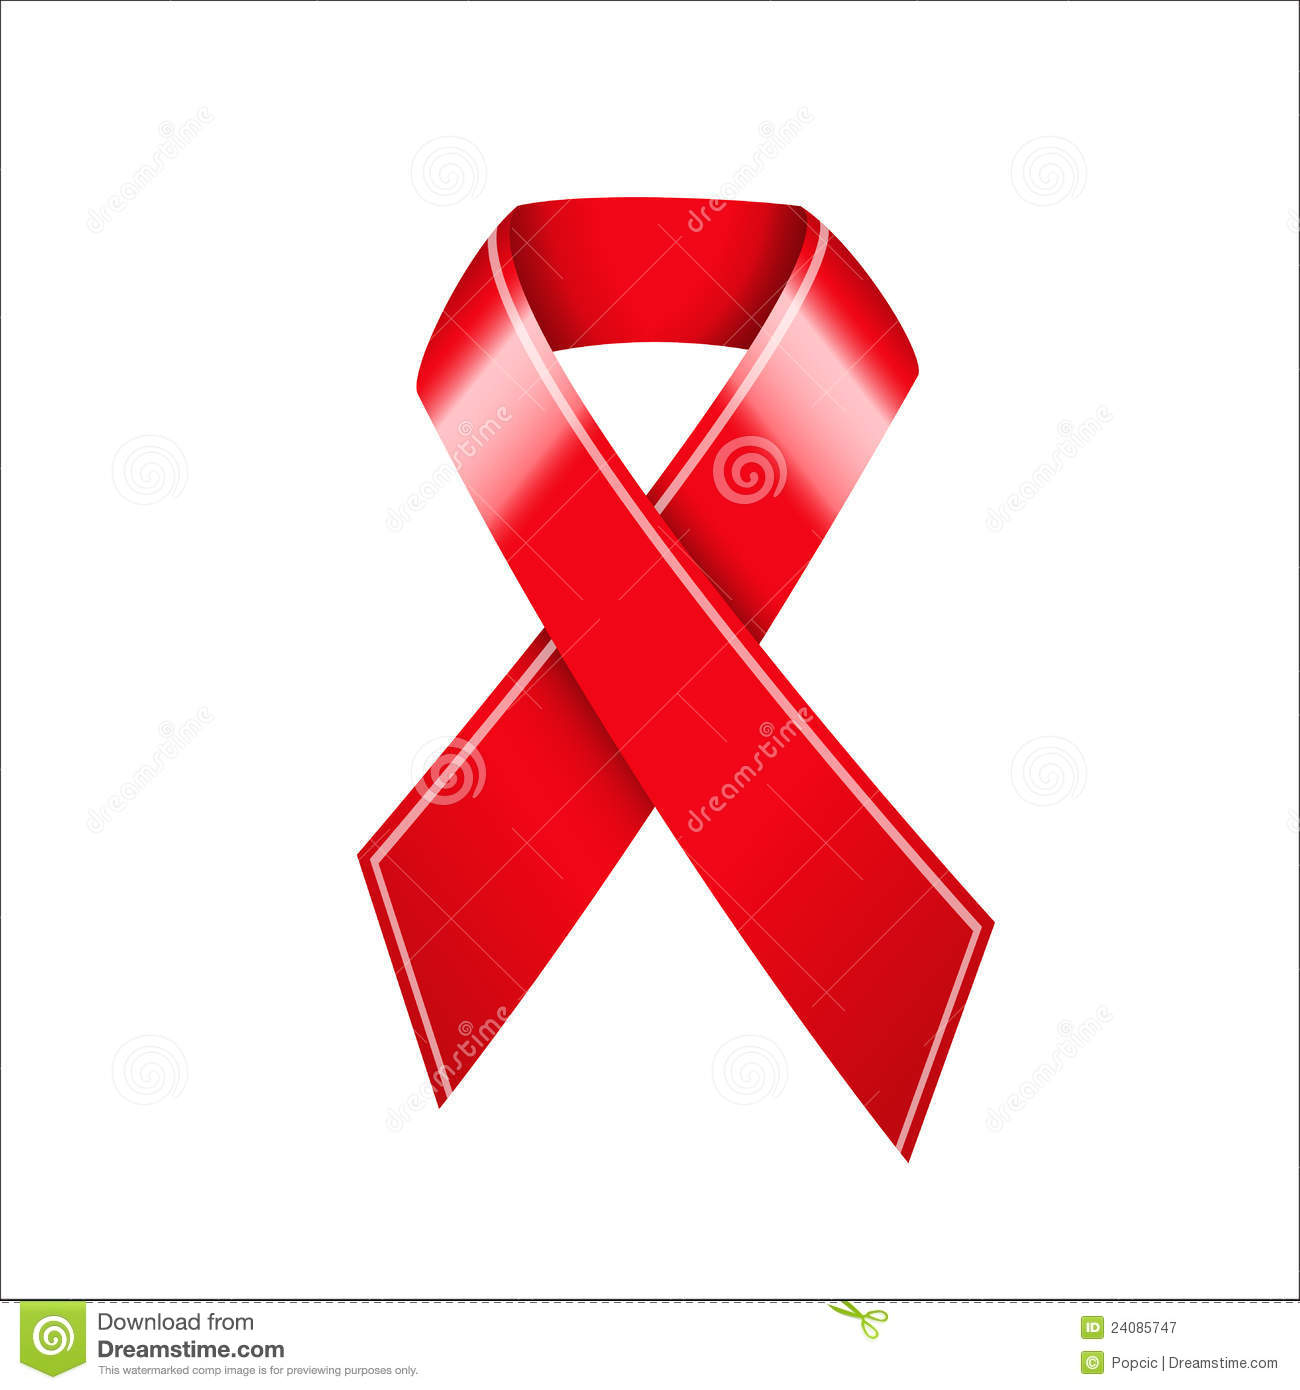 HIV AIDS Awareness Ribbon